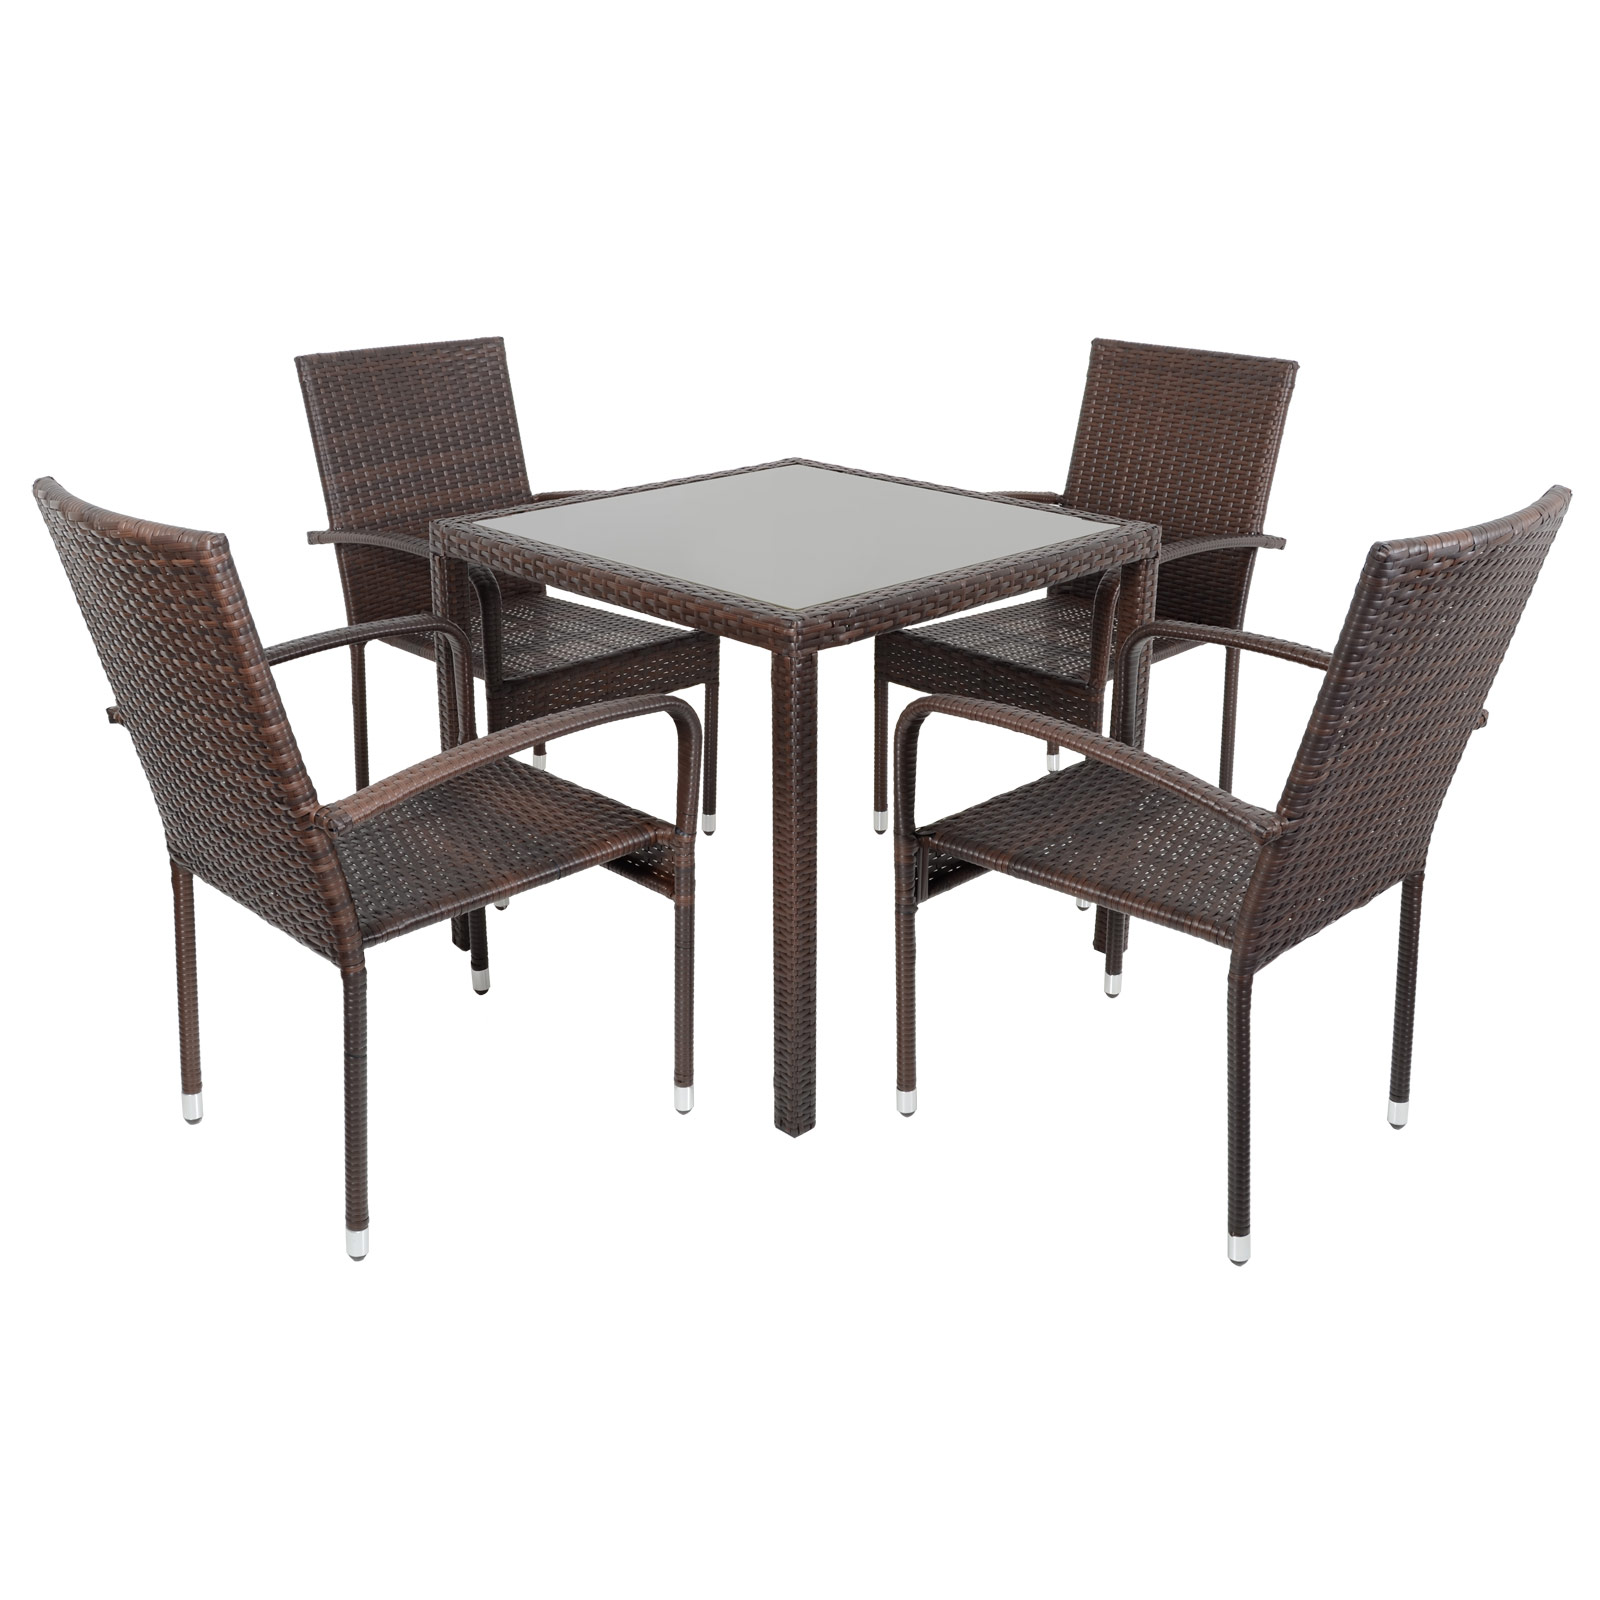 Modena rattan wicker dining table with 4 chairs garden for Small patio table and 4 chairs